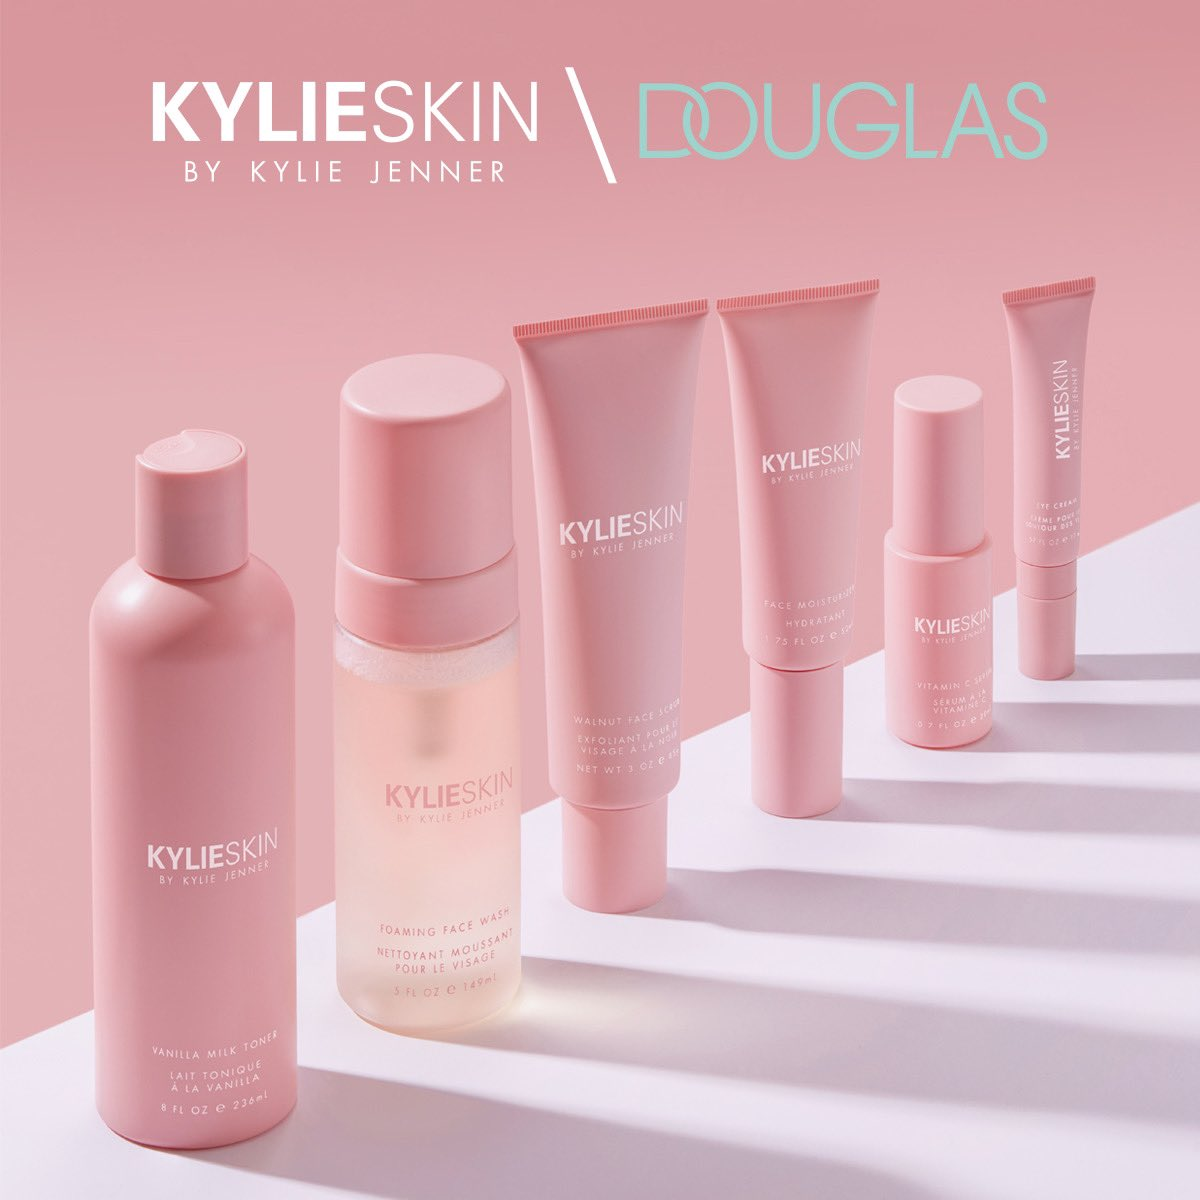 Kylie Skin is officially available today in Europe at Douglas! Shop online now! 💕 The best way to celebrate the one year anniversary of @KylieSkin! 🥰 #KylieXDouglas